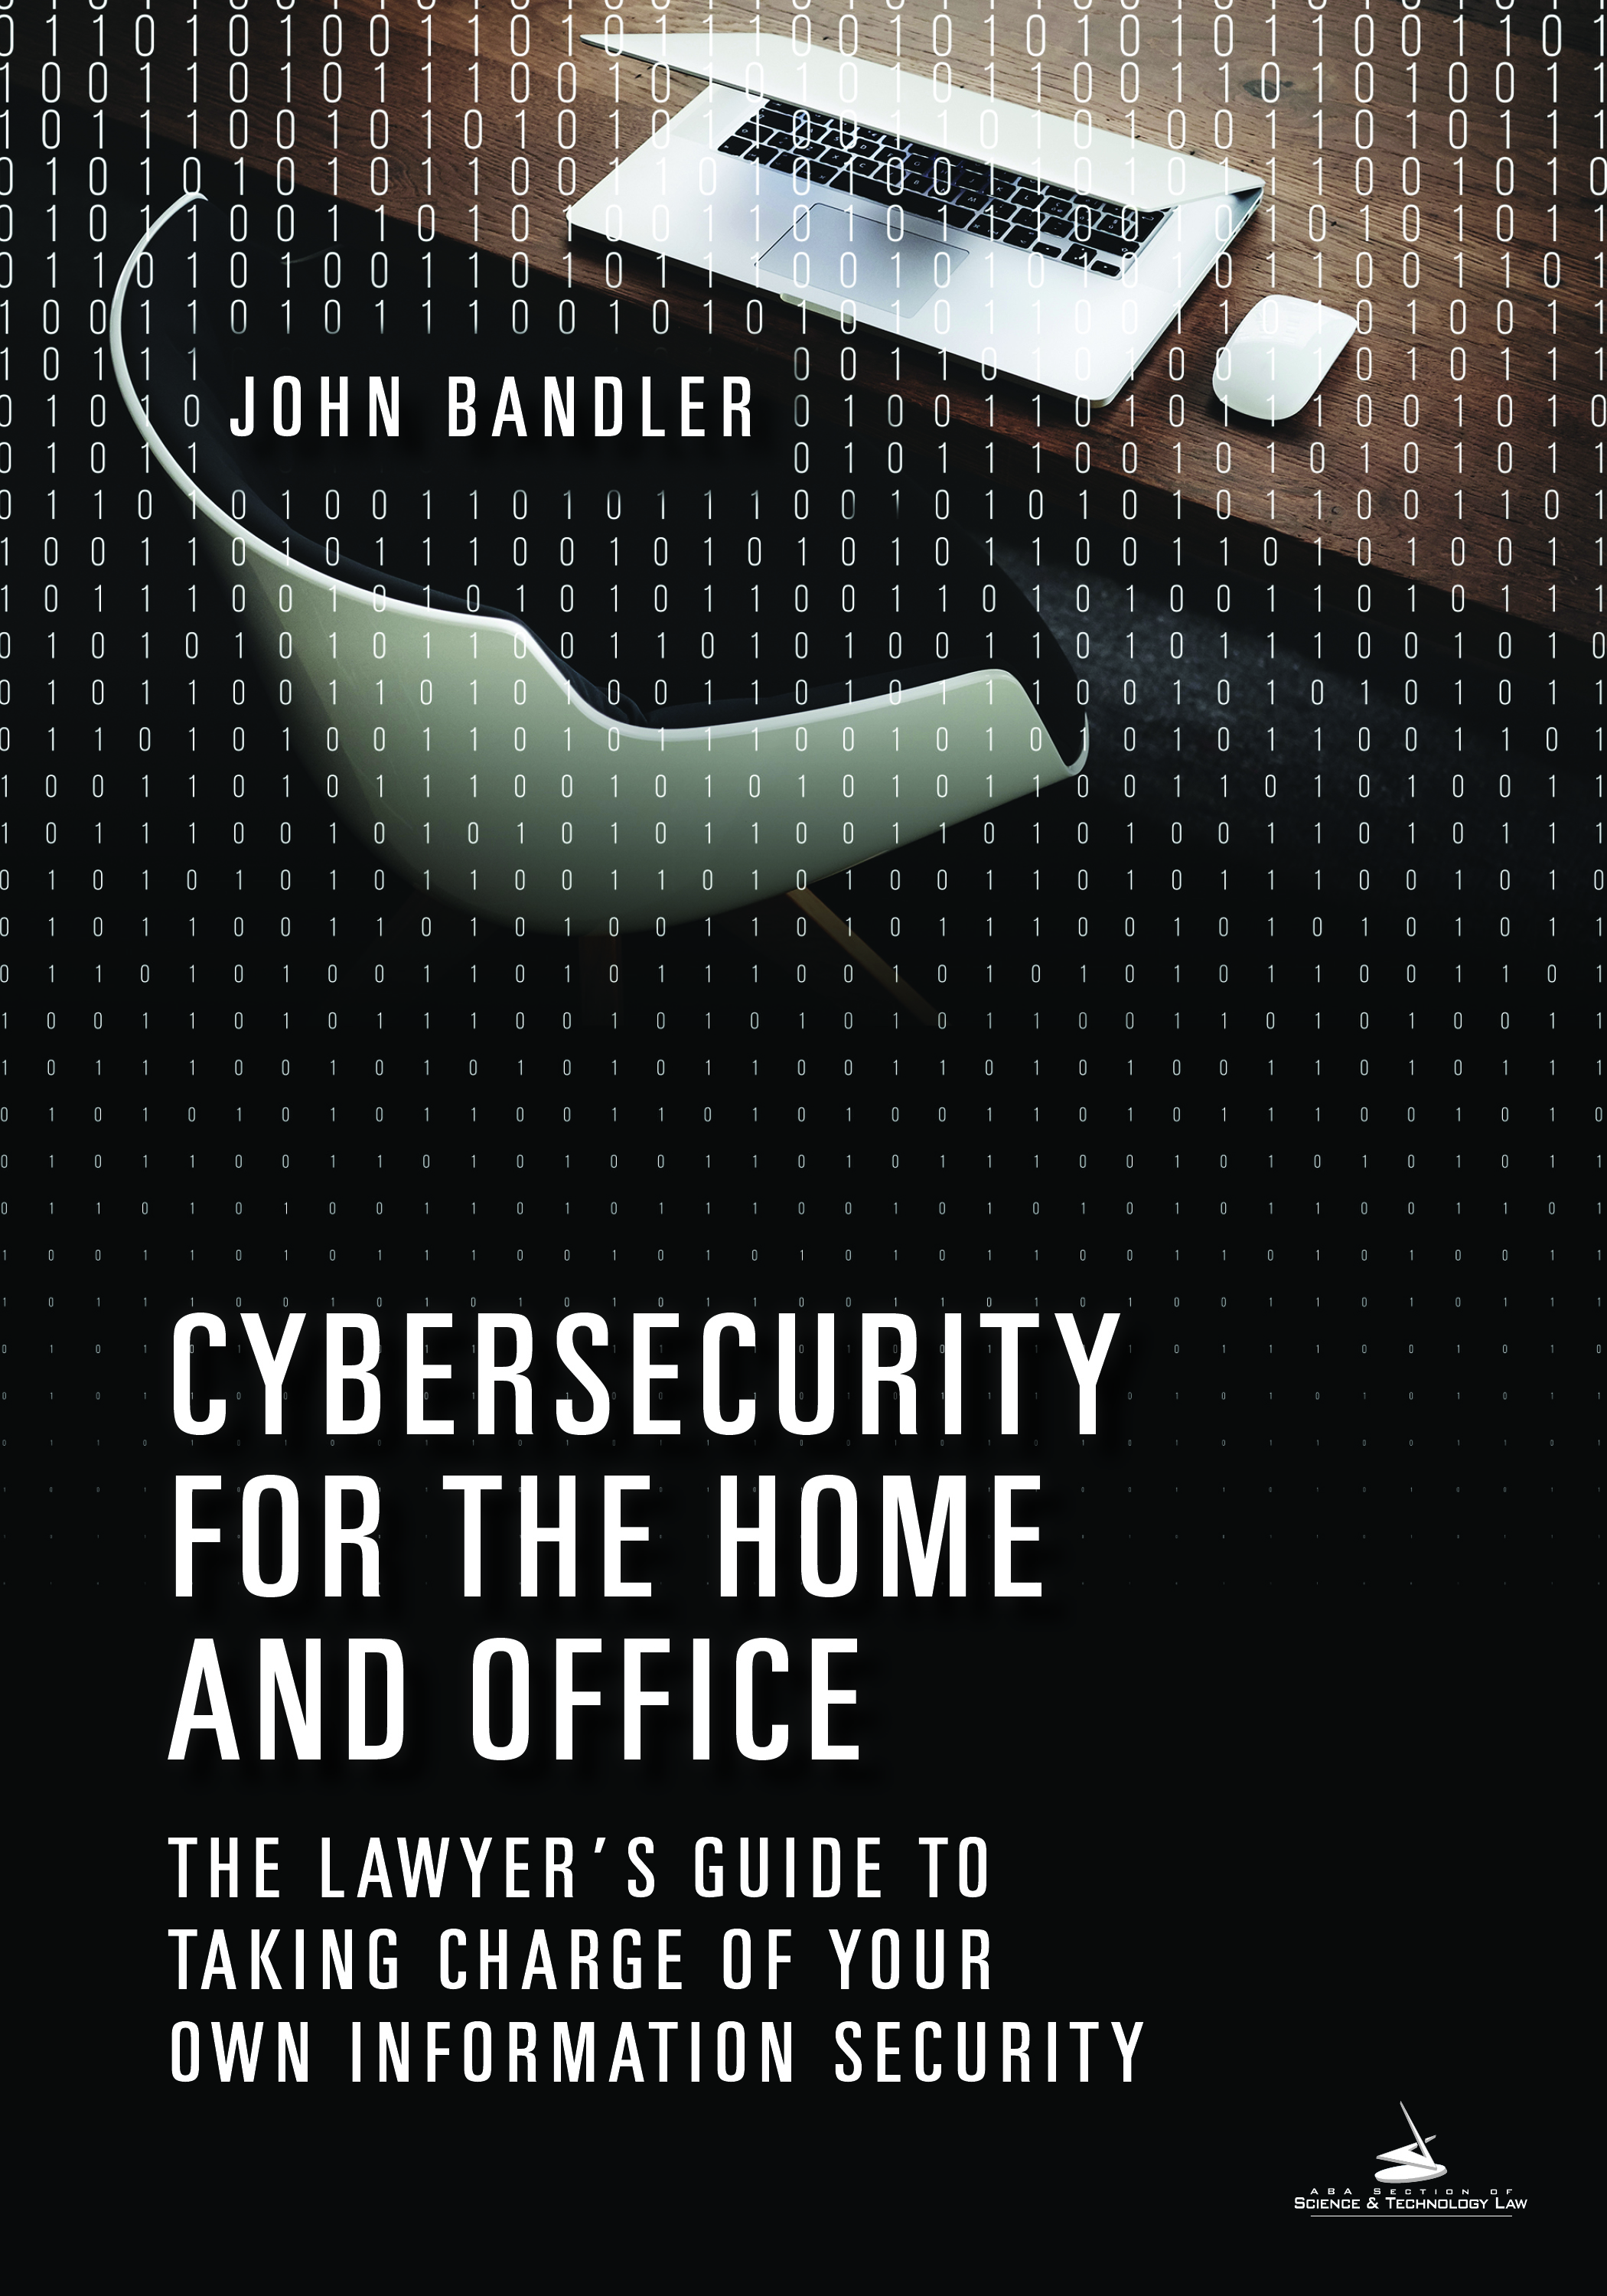 cybersecurity for the home and office the lawyer s guide to taking